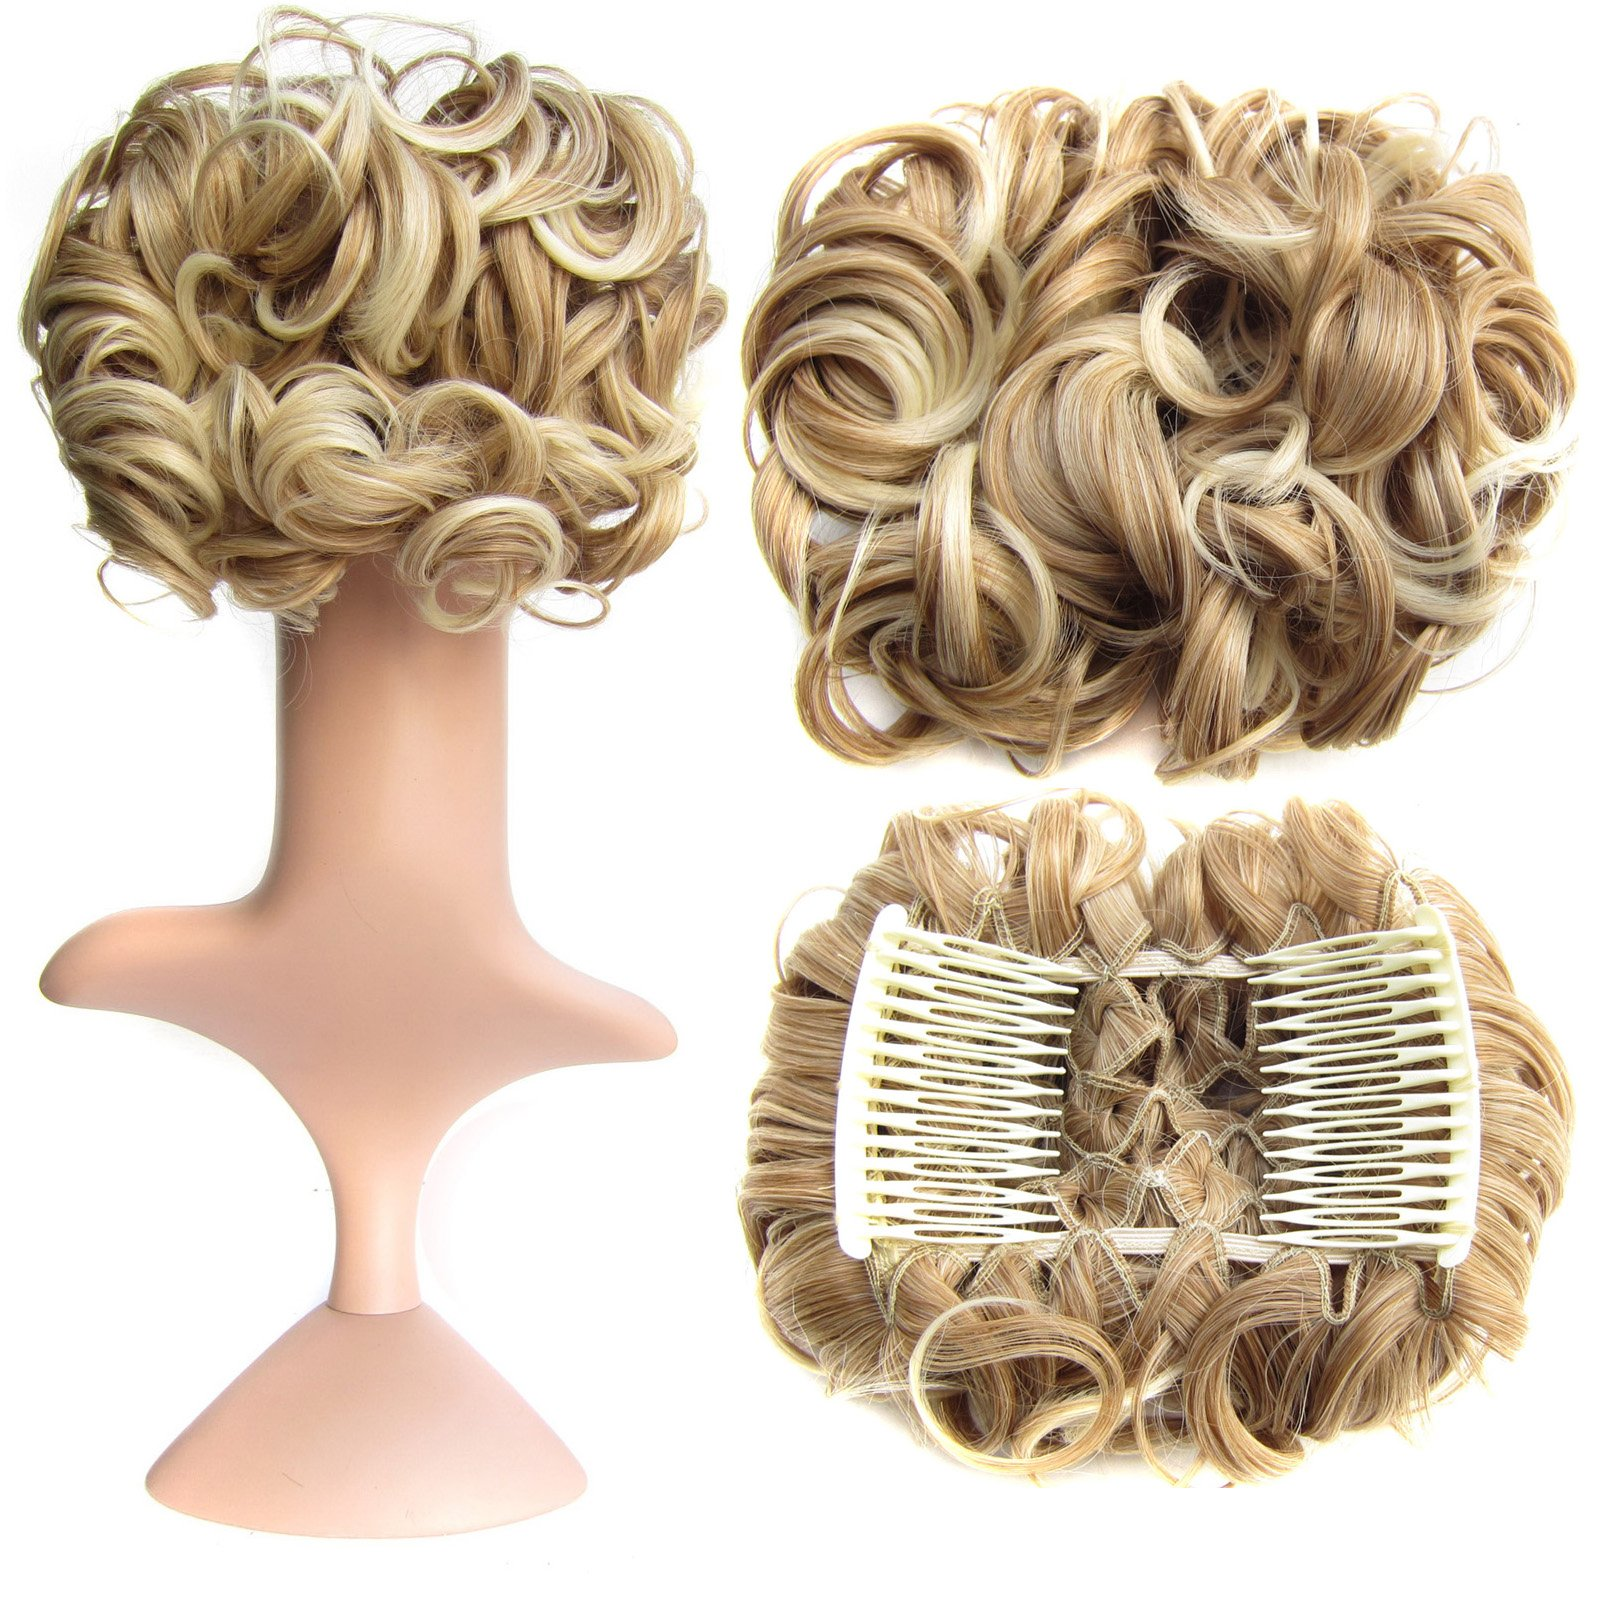 SWACC Short Messy Curly Dish Hair Bun Extension Easy Stretch hair Combs Clip in Ponytail Extension Scrunchie Chignon Tray Ponytail Hairpieces (Blonde Mixed-27T613#) by SWACC